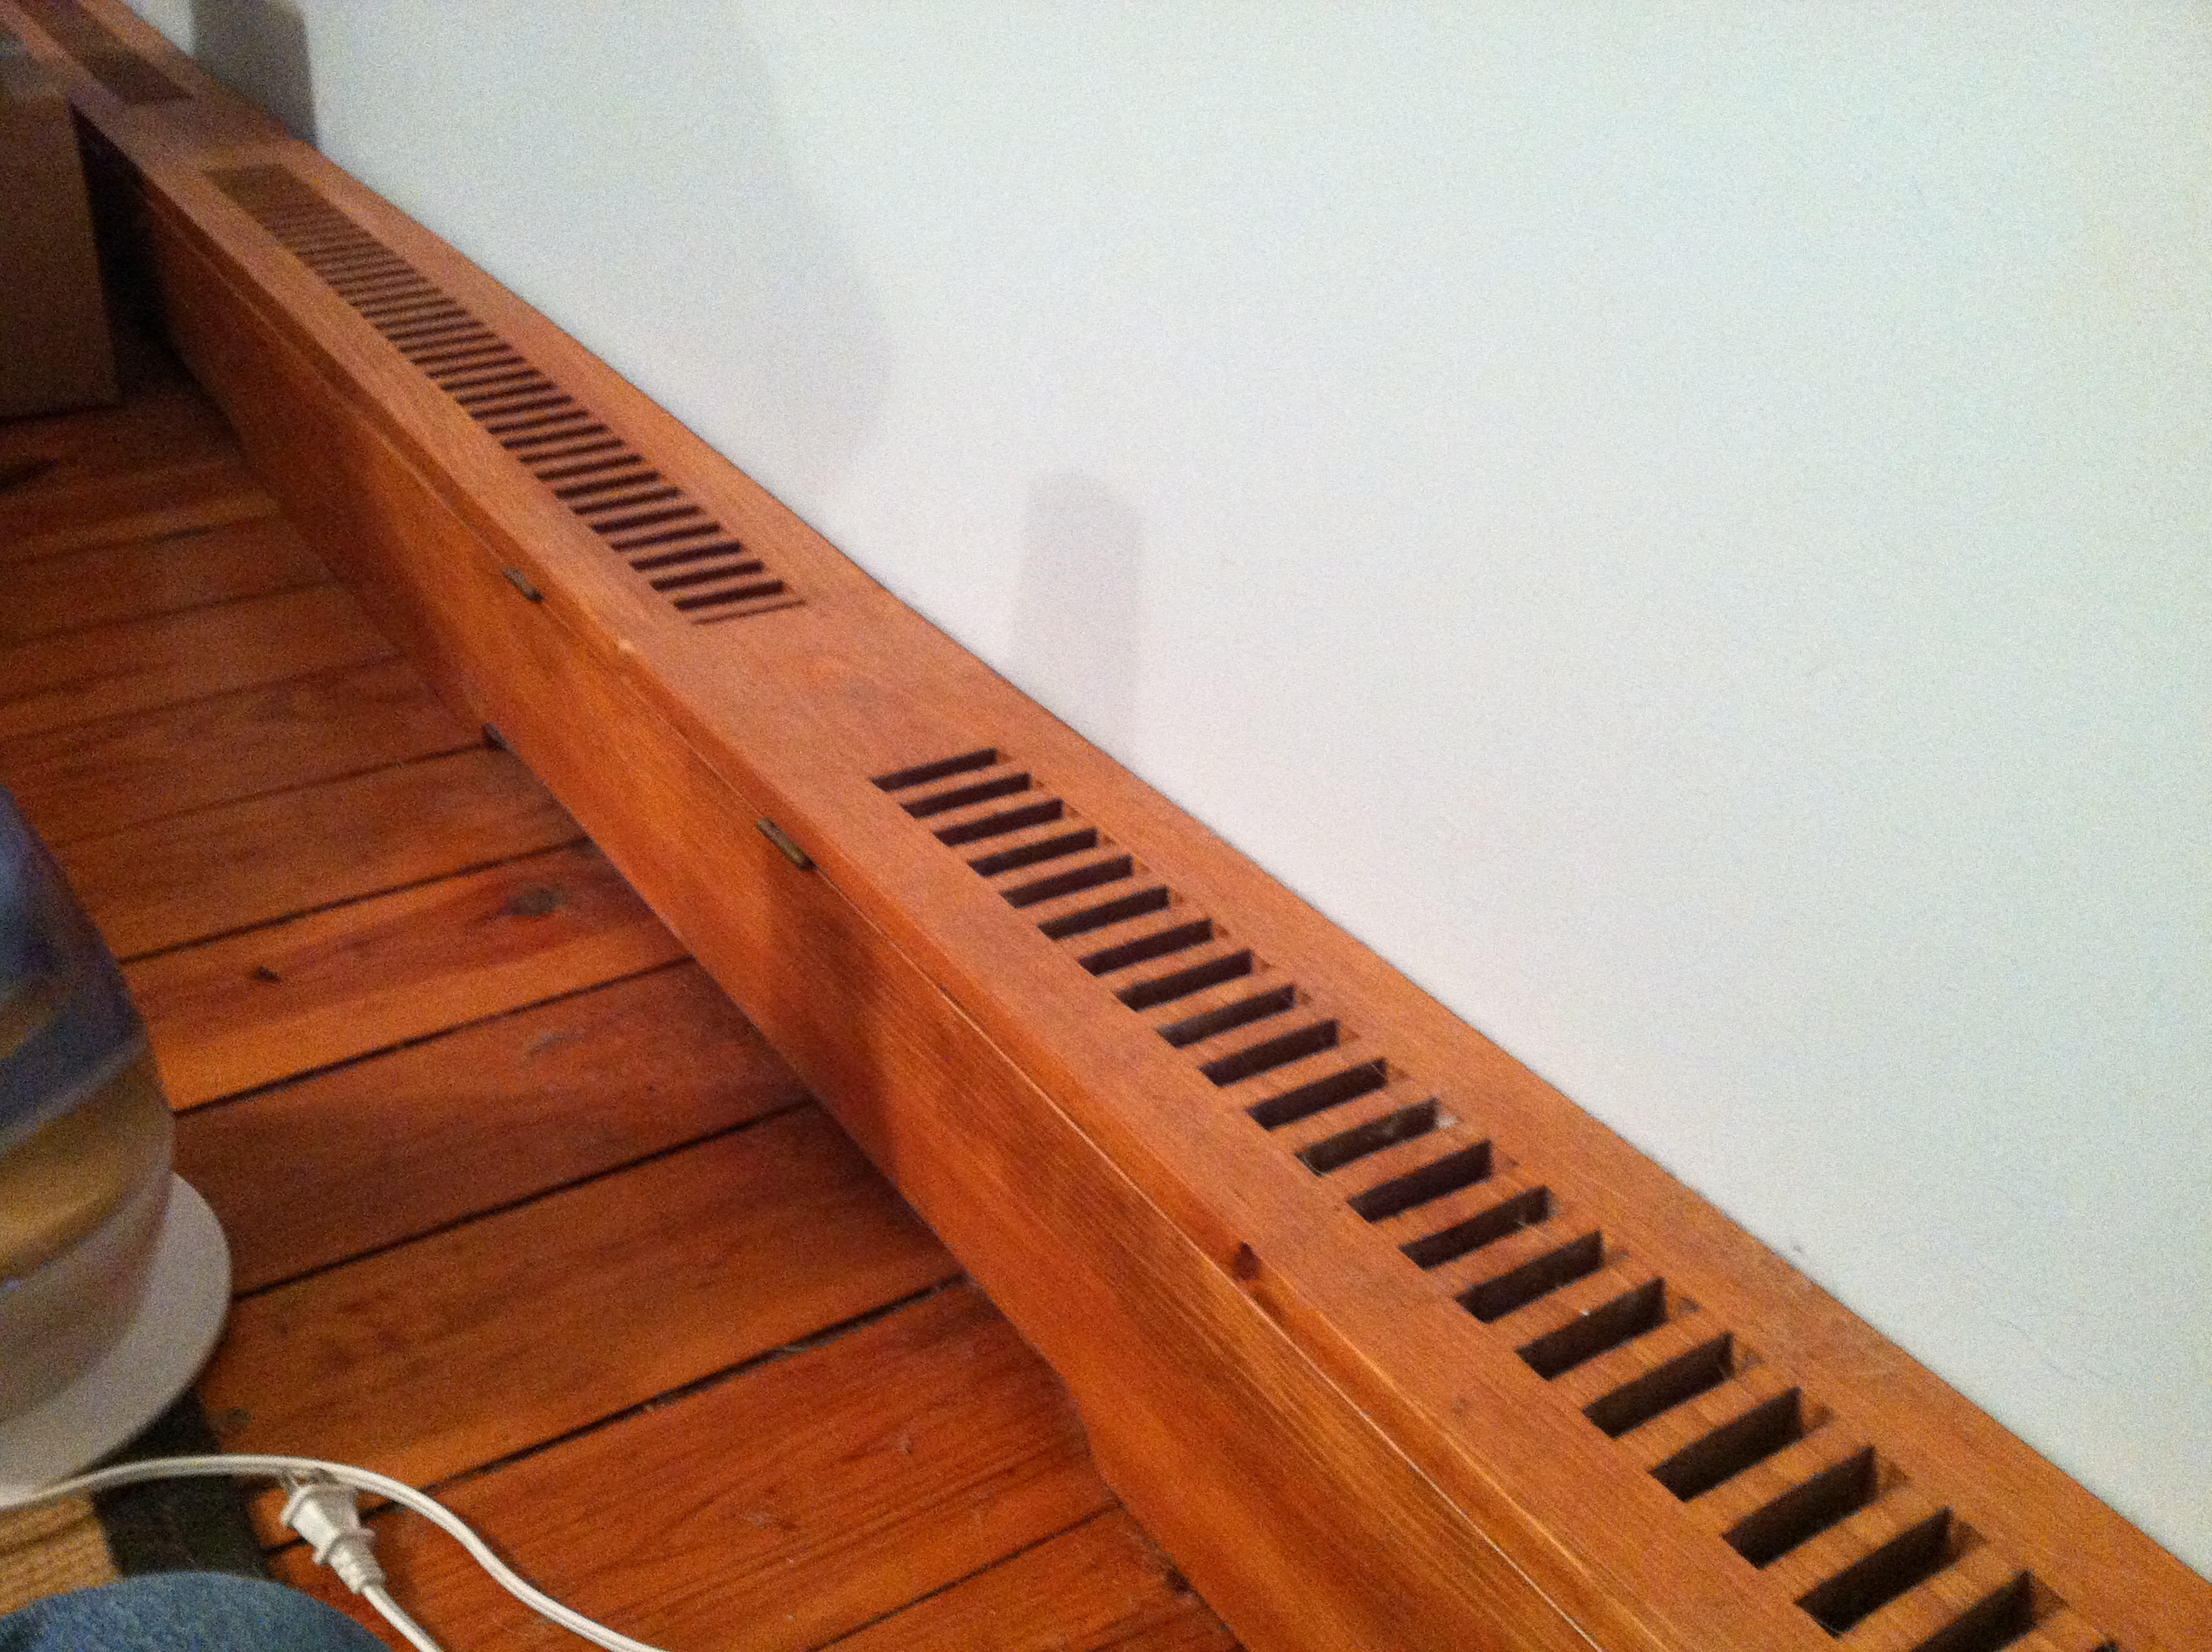 How To Make Wooden Baseboard Heater Covers 4 Steps Instructables